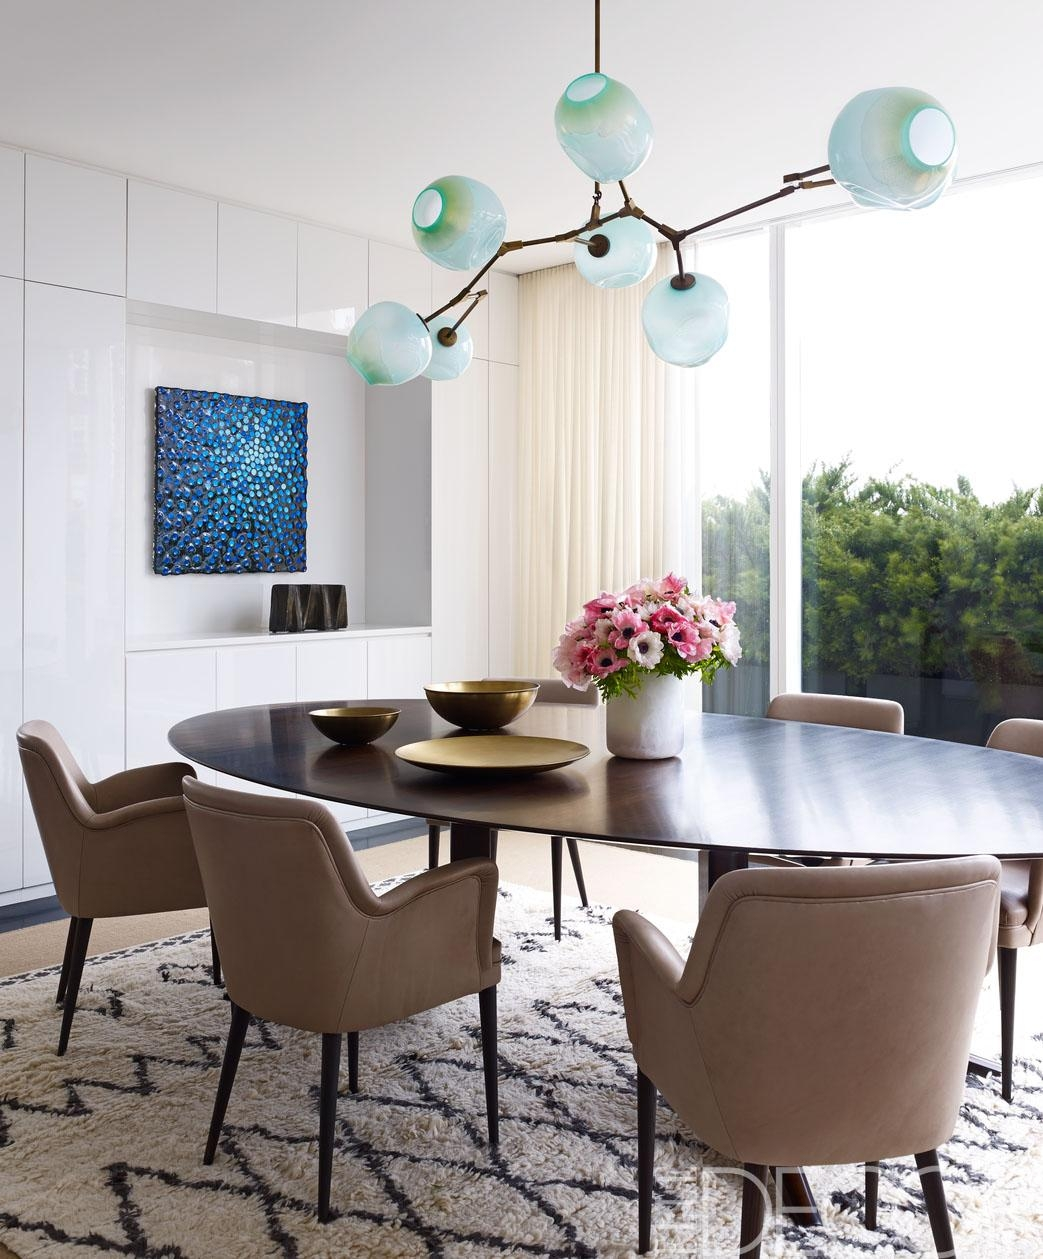 25 Modern Dining Room Decorating Ideas - Contemporary Dining Room inside Modern Wall Art For Dining Room